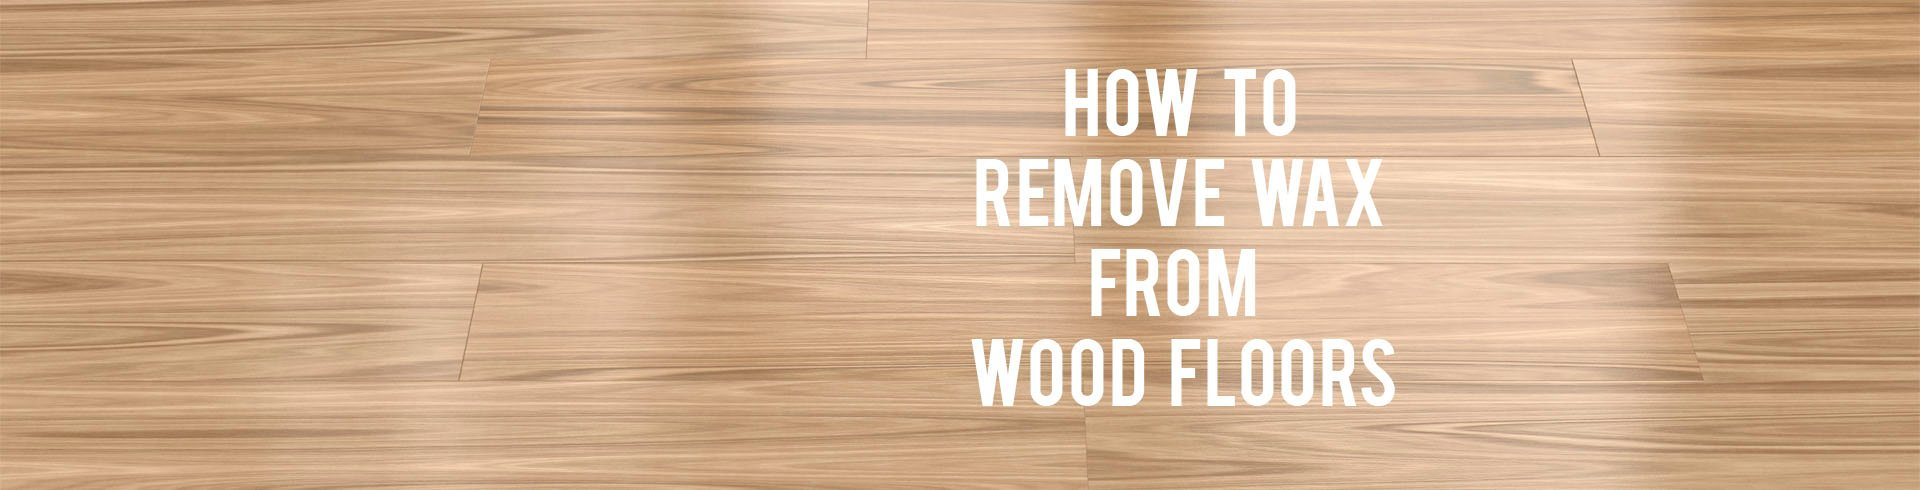 How To Remove Wax From Wood Floors Rc Willey Blog